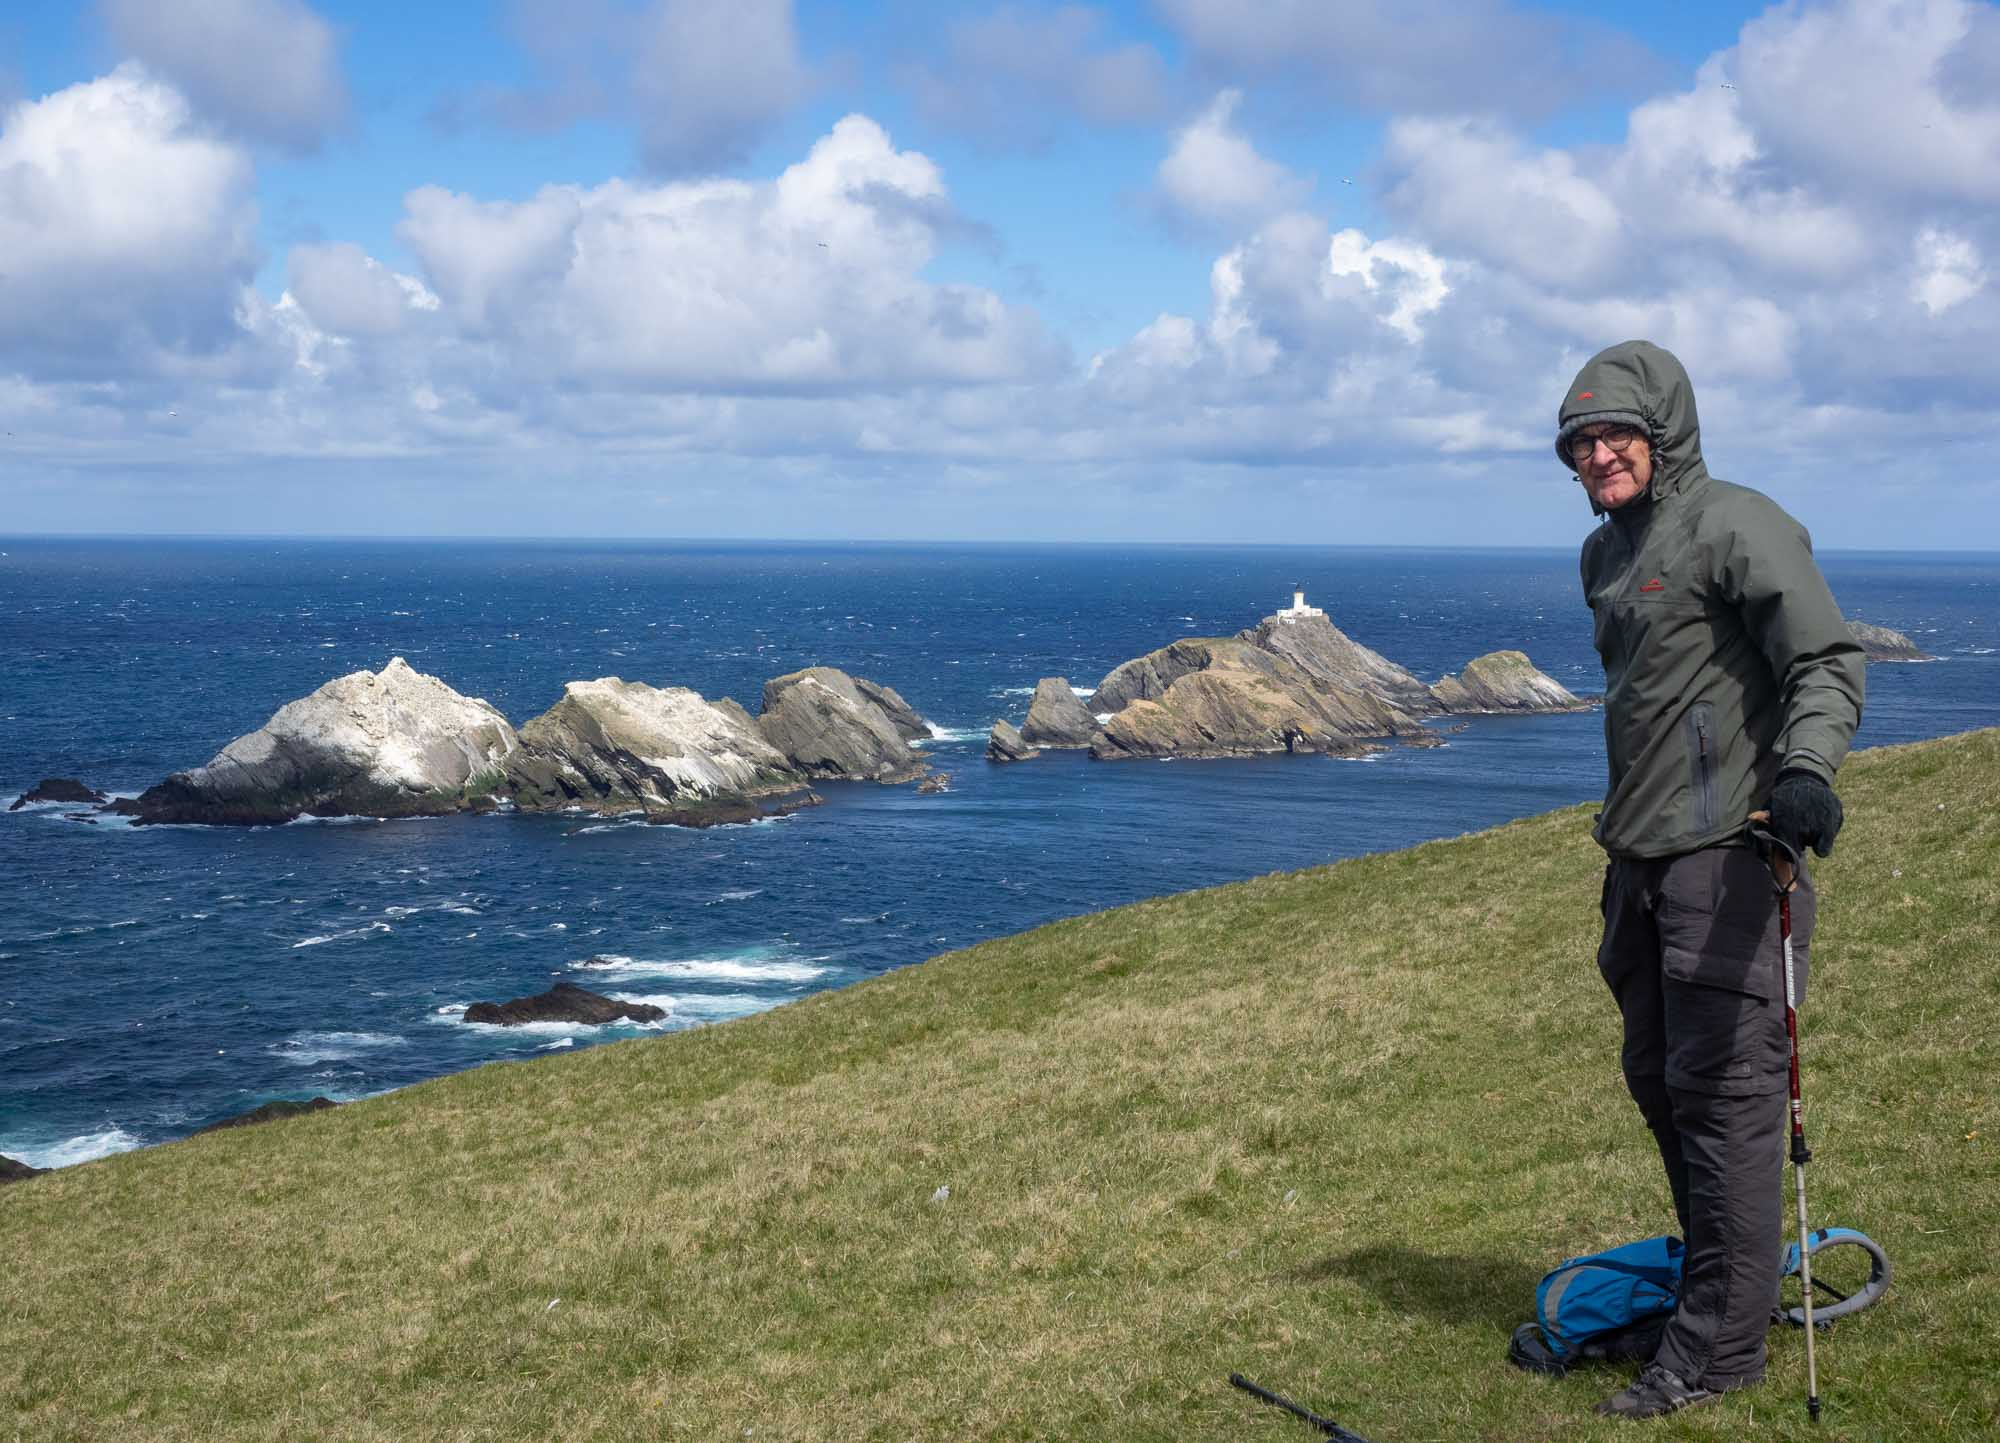 The northernmost tip of Unst – and of Scotland - the islands of Muckle Flugga